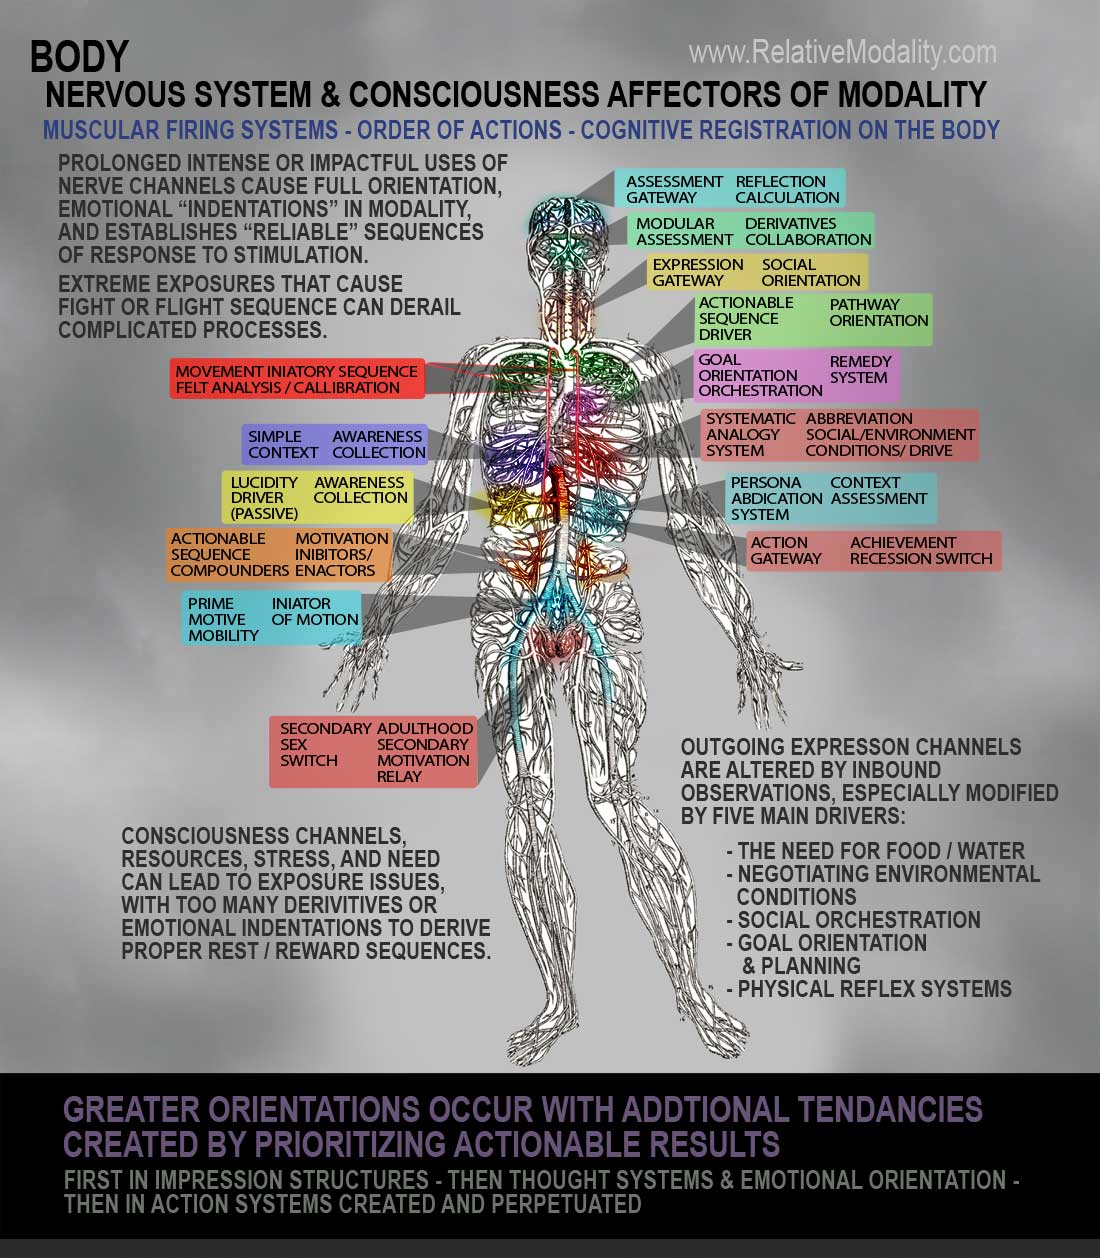 Body Relative Modality Relay Switch Animation Human Nervous System With Focal Points Of Activity Outlined These Center Around